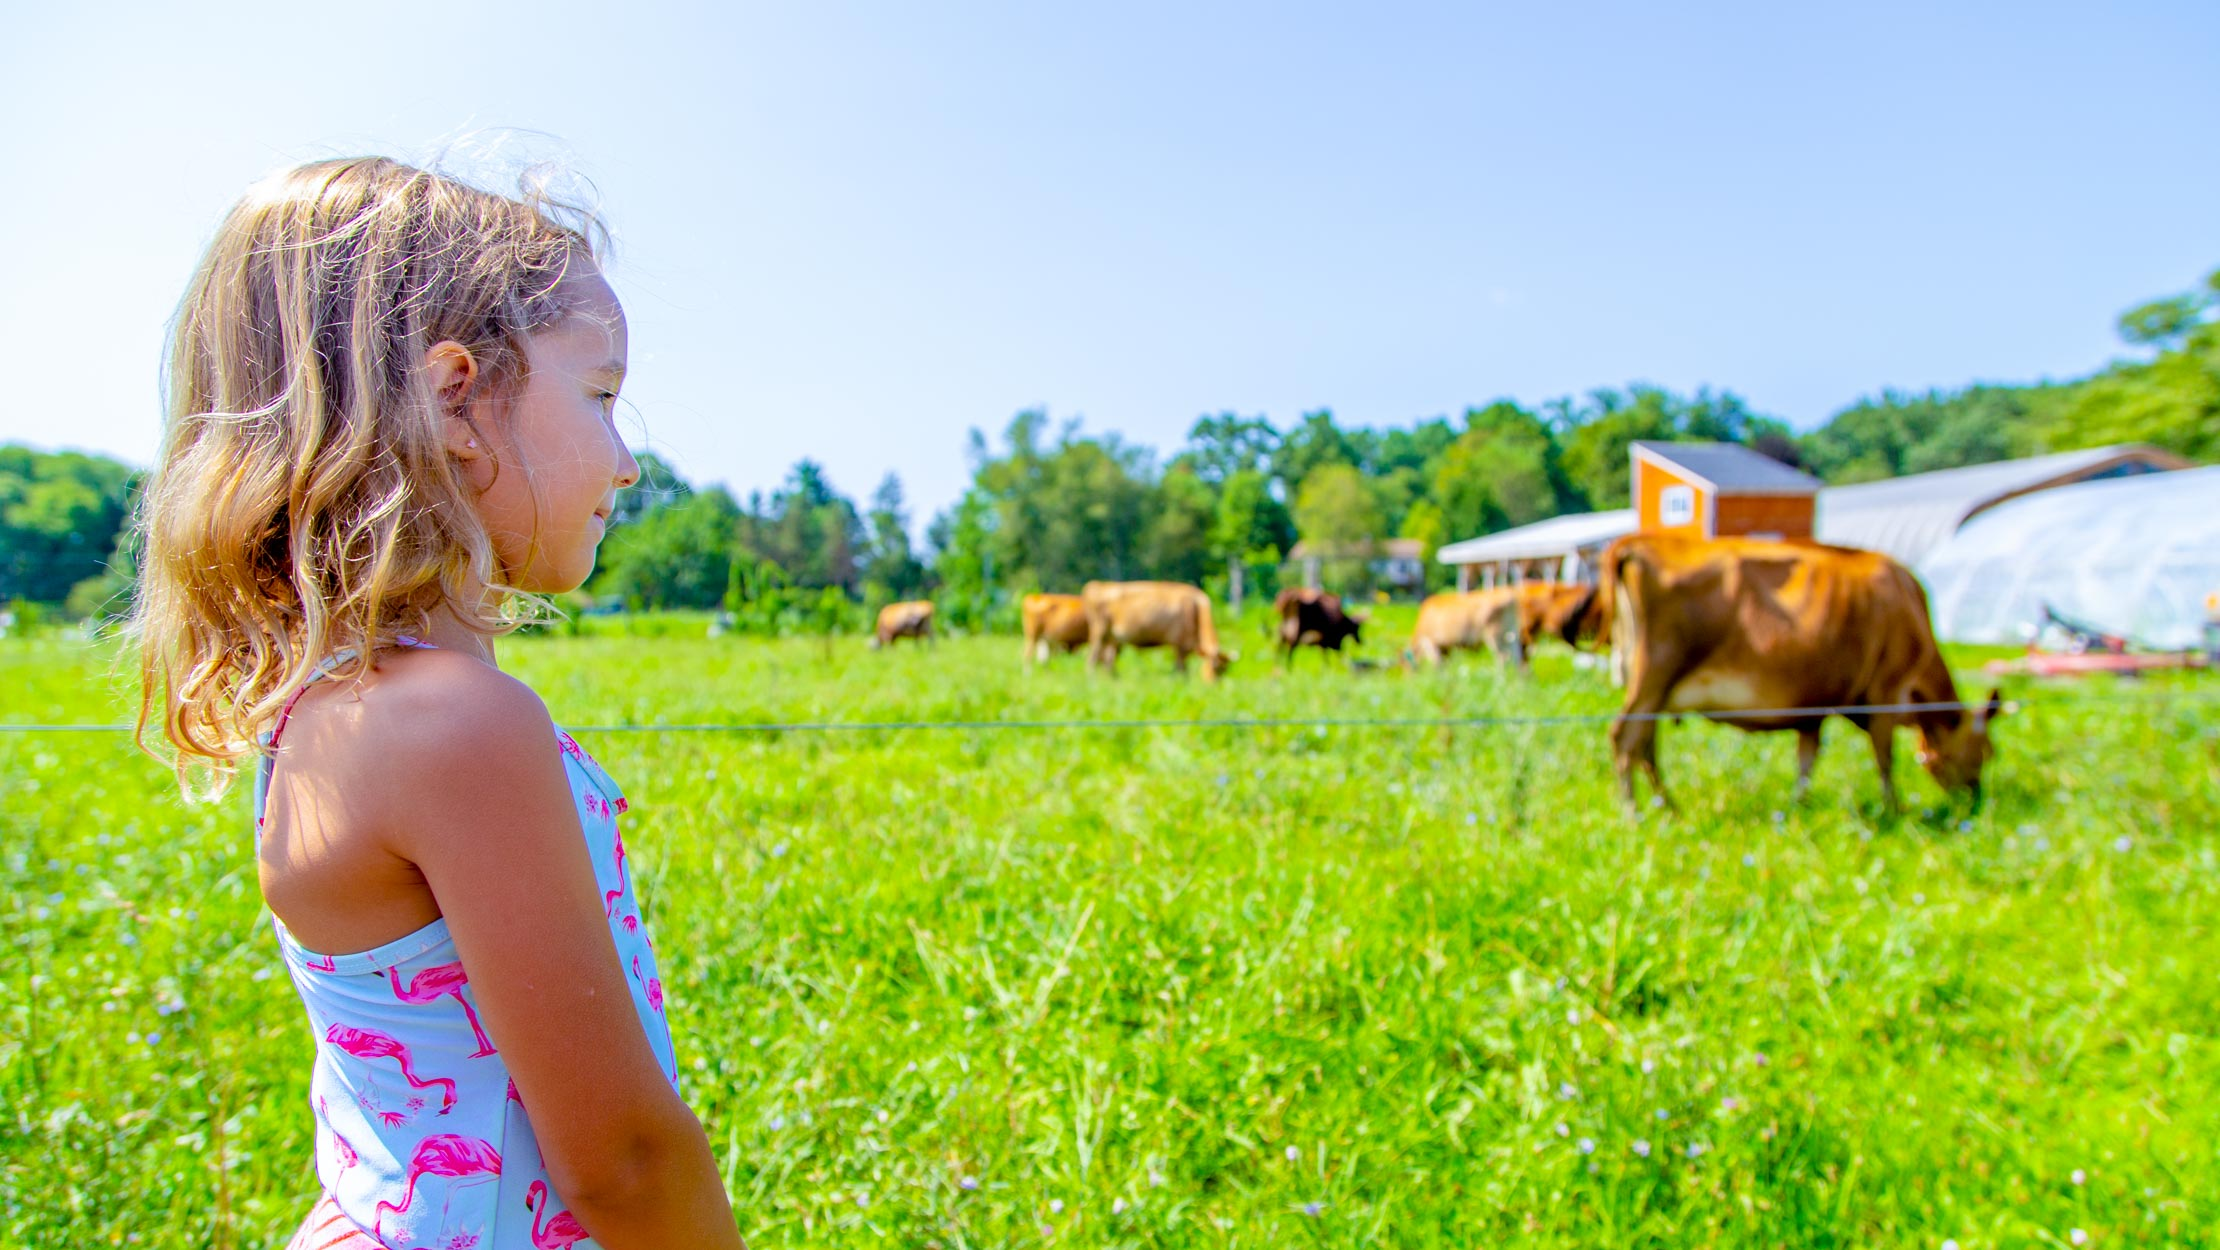 Young camper looking at field of cows